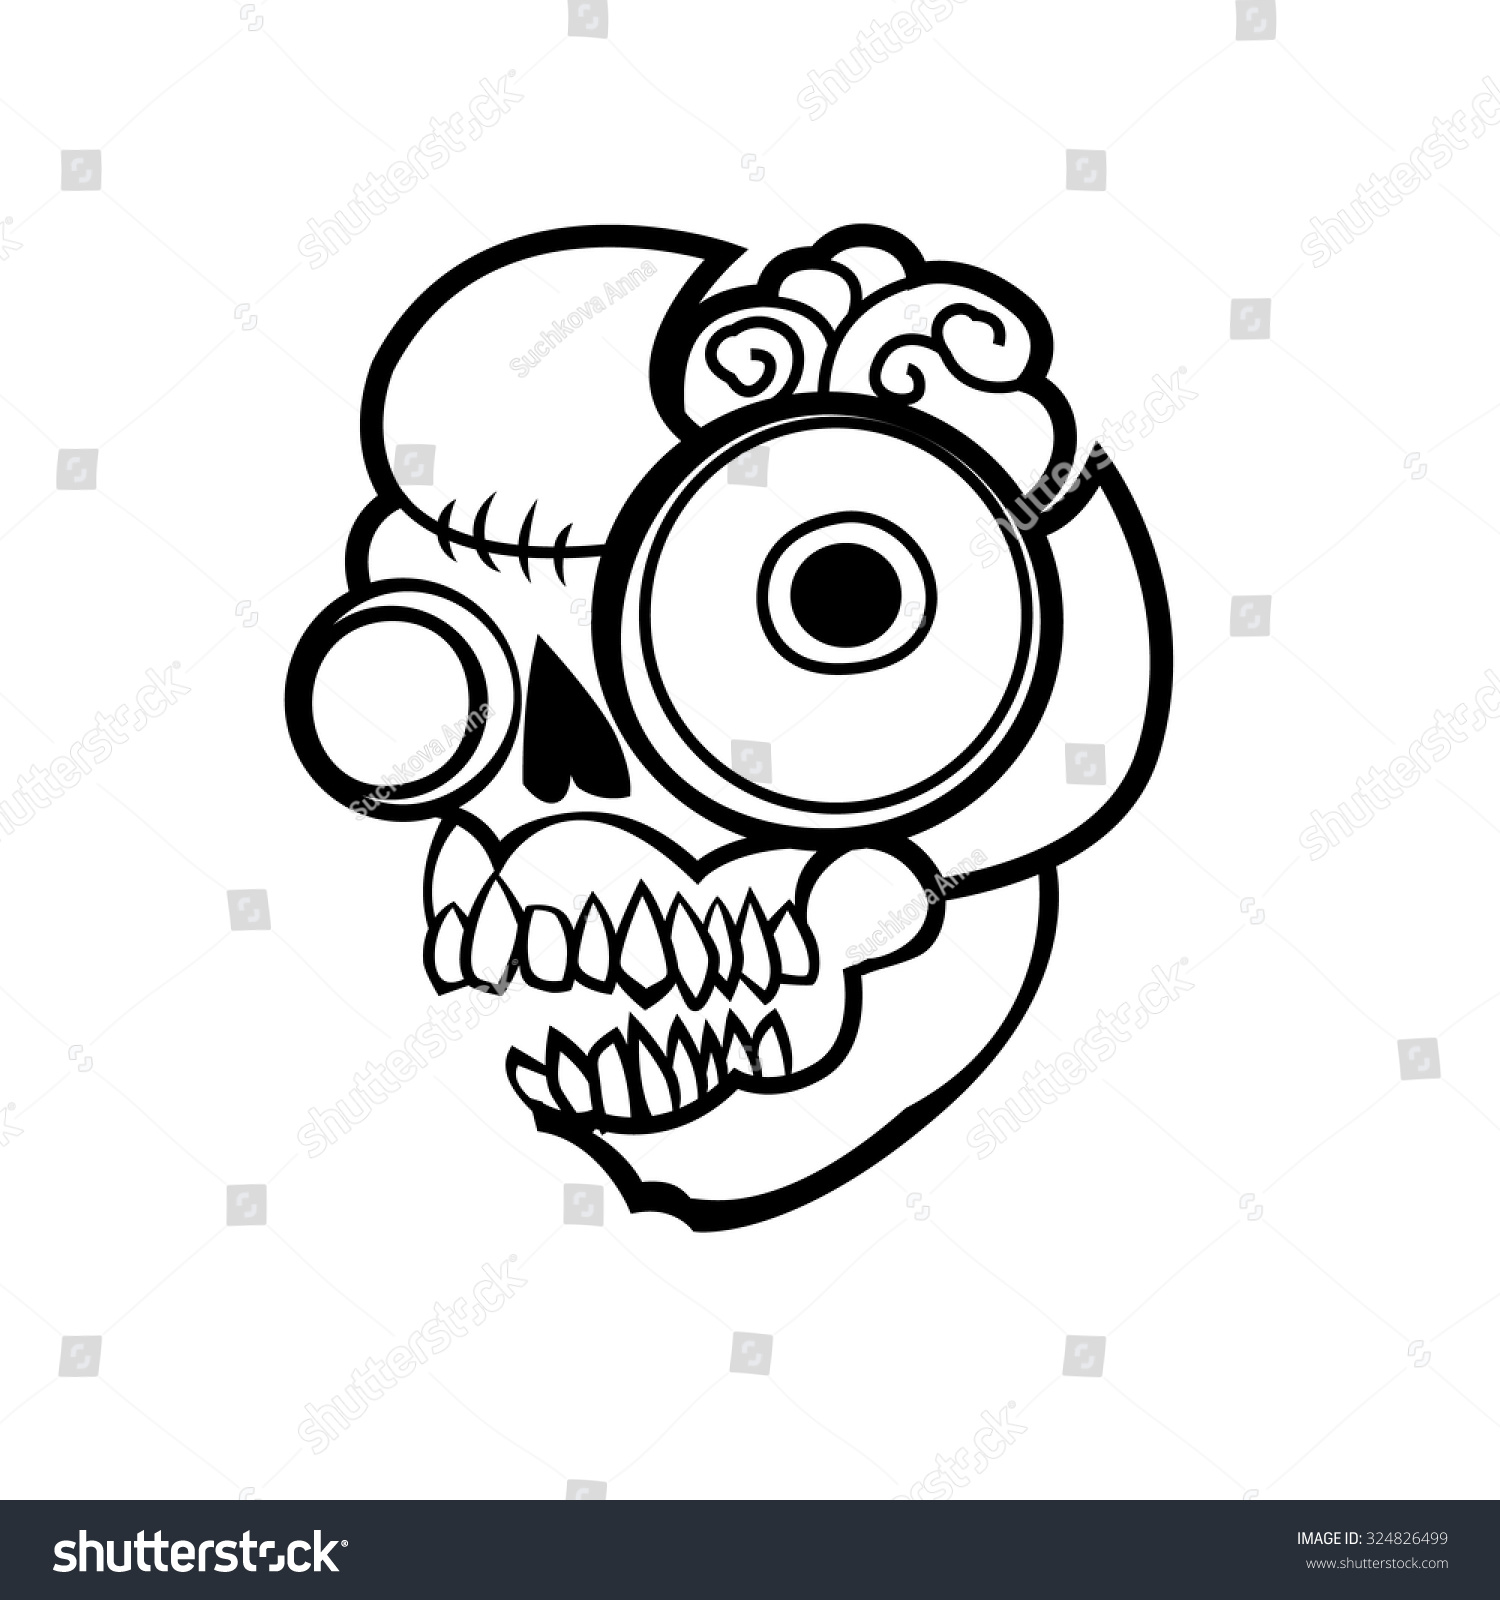 Uncategorized Simple Zombie Drawing cartoon simple zombie head vector illustration stock halloween art